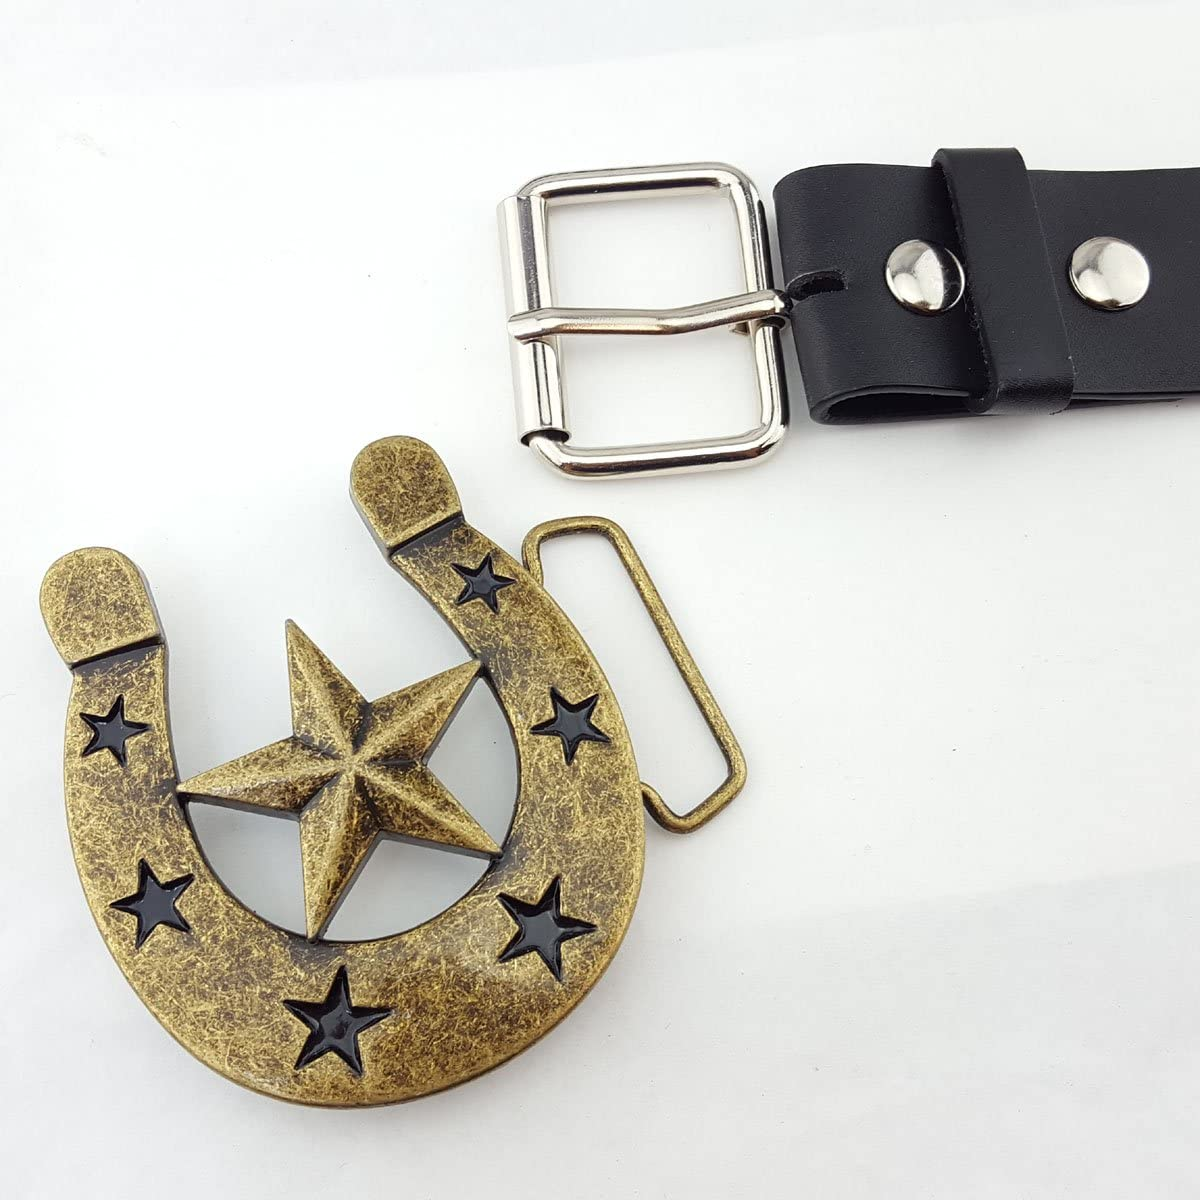 Two buckles Deal With one Interchangeable Black Belt Bling Horse Shoes